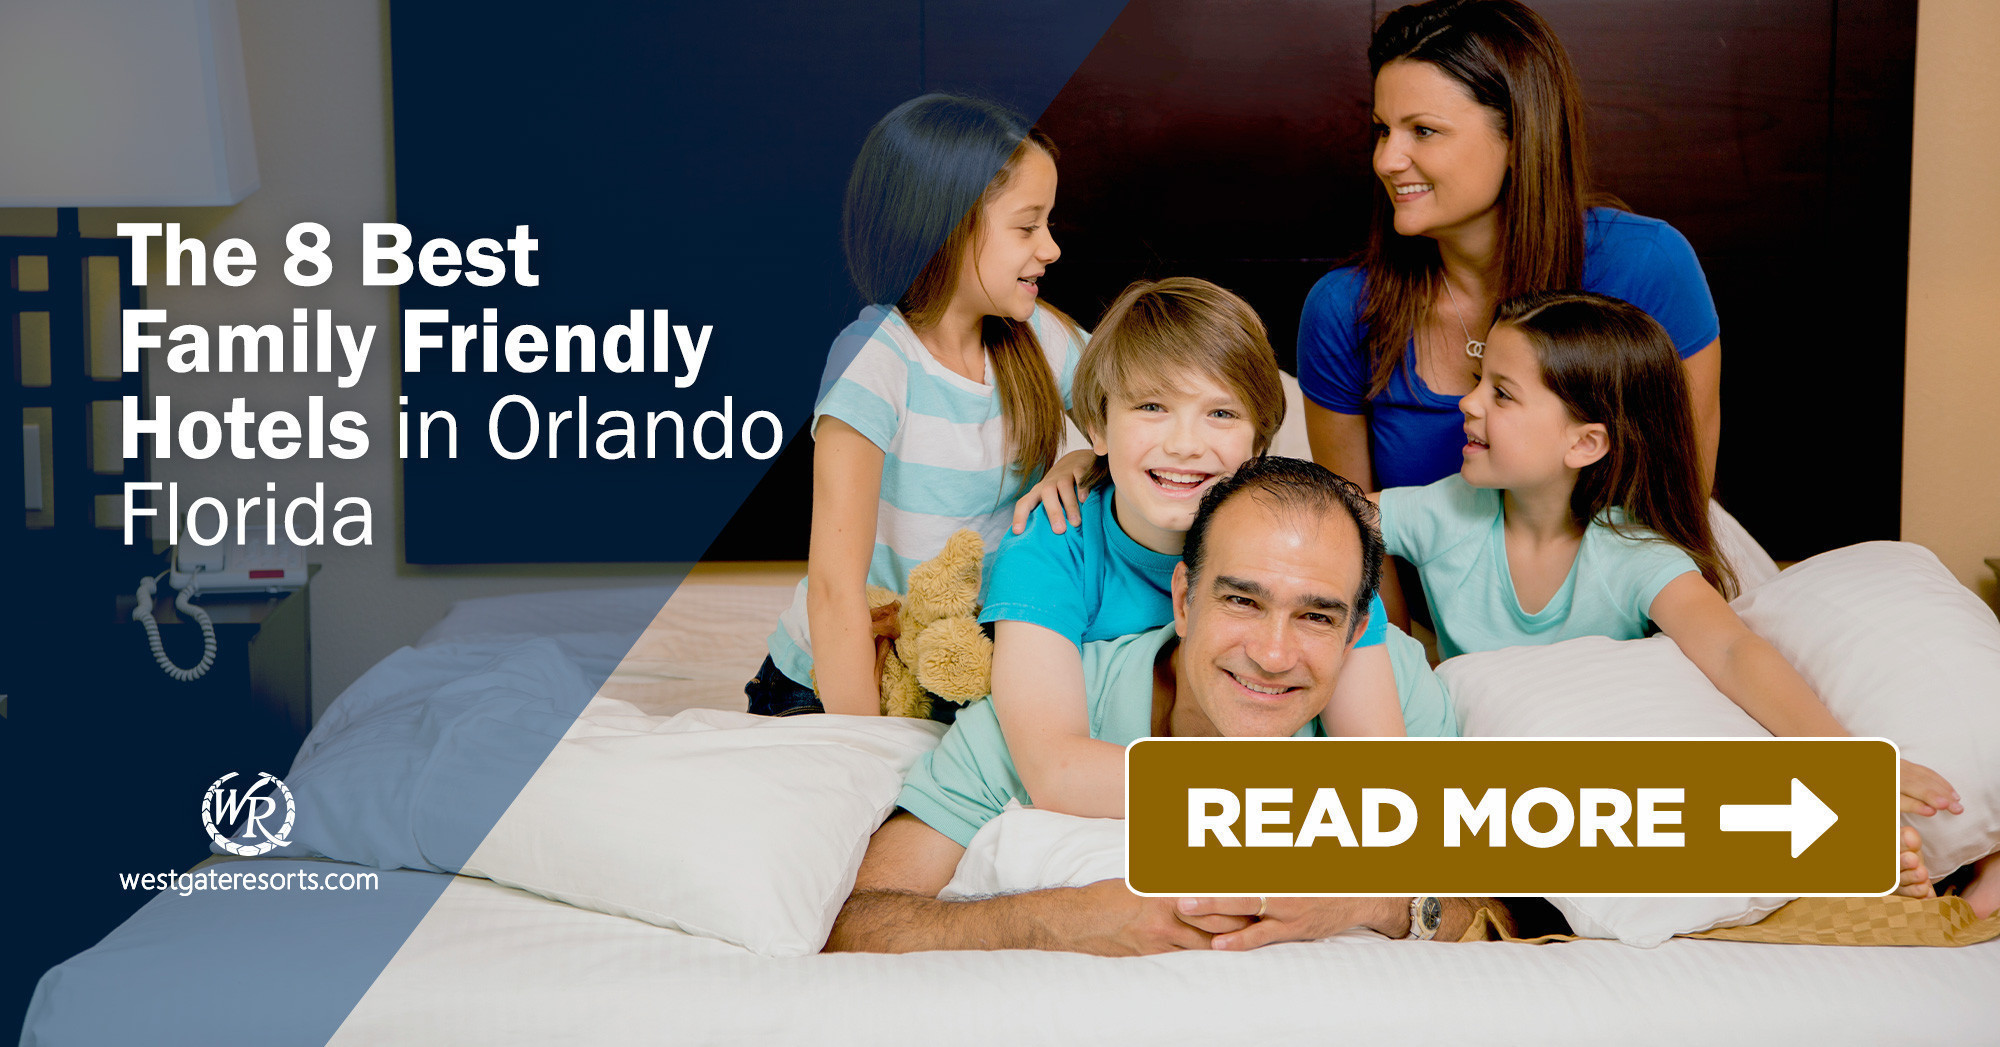 The 8 Best Family Friendly Hotels in Orlando Florida | Orlando Family Hotels & Resorts